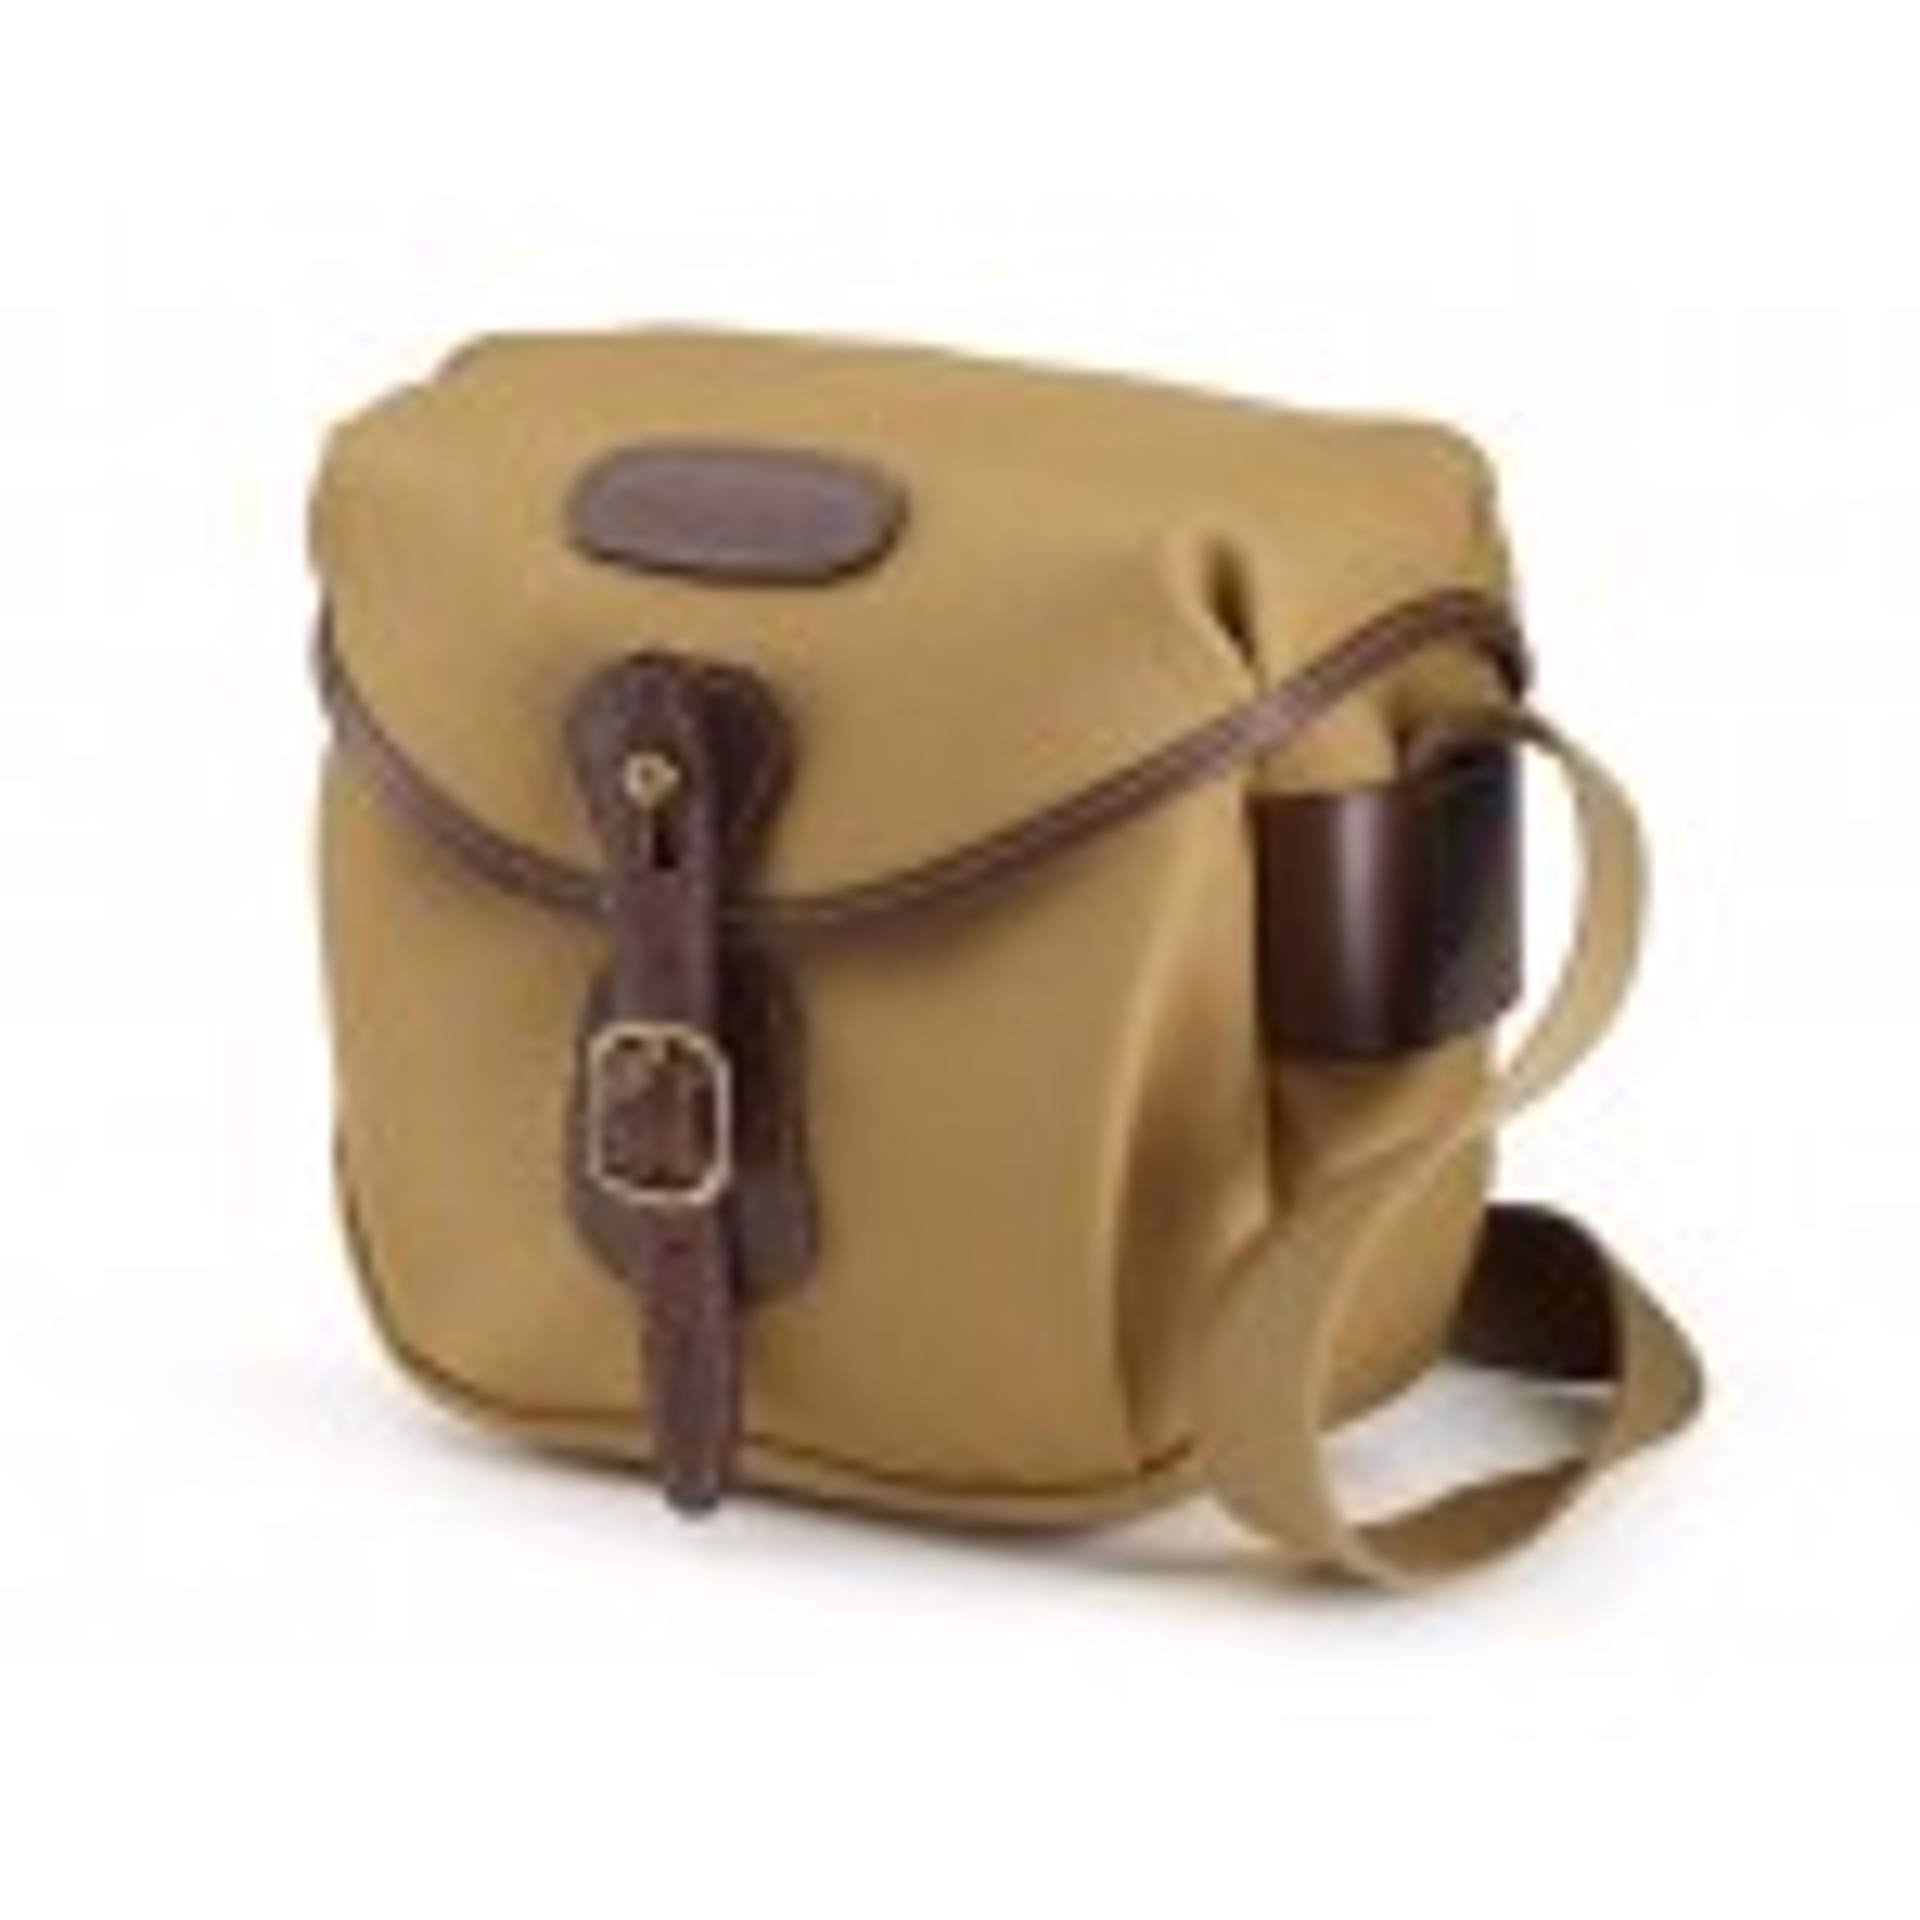 Billingham Hadley Digital (Vàng/Chocolate)